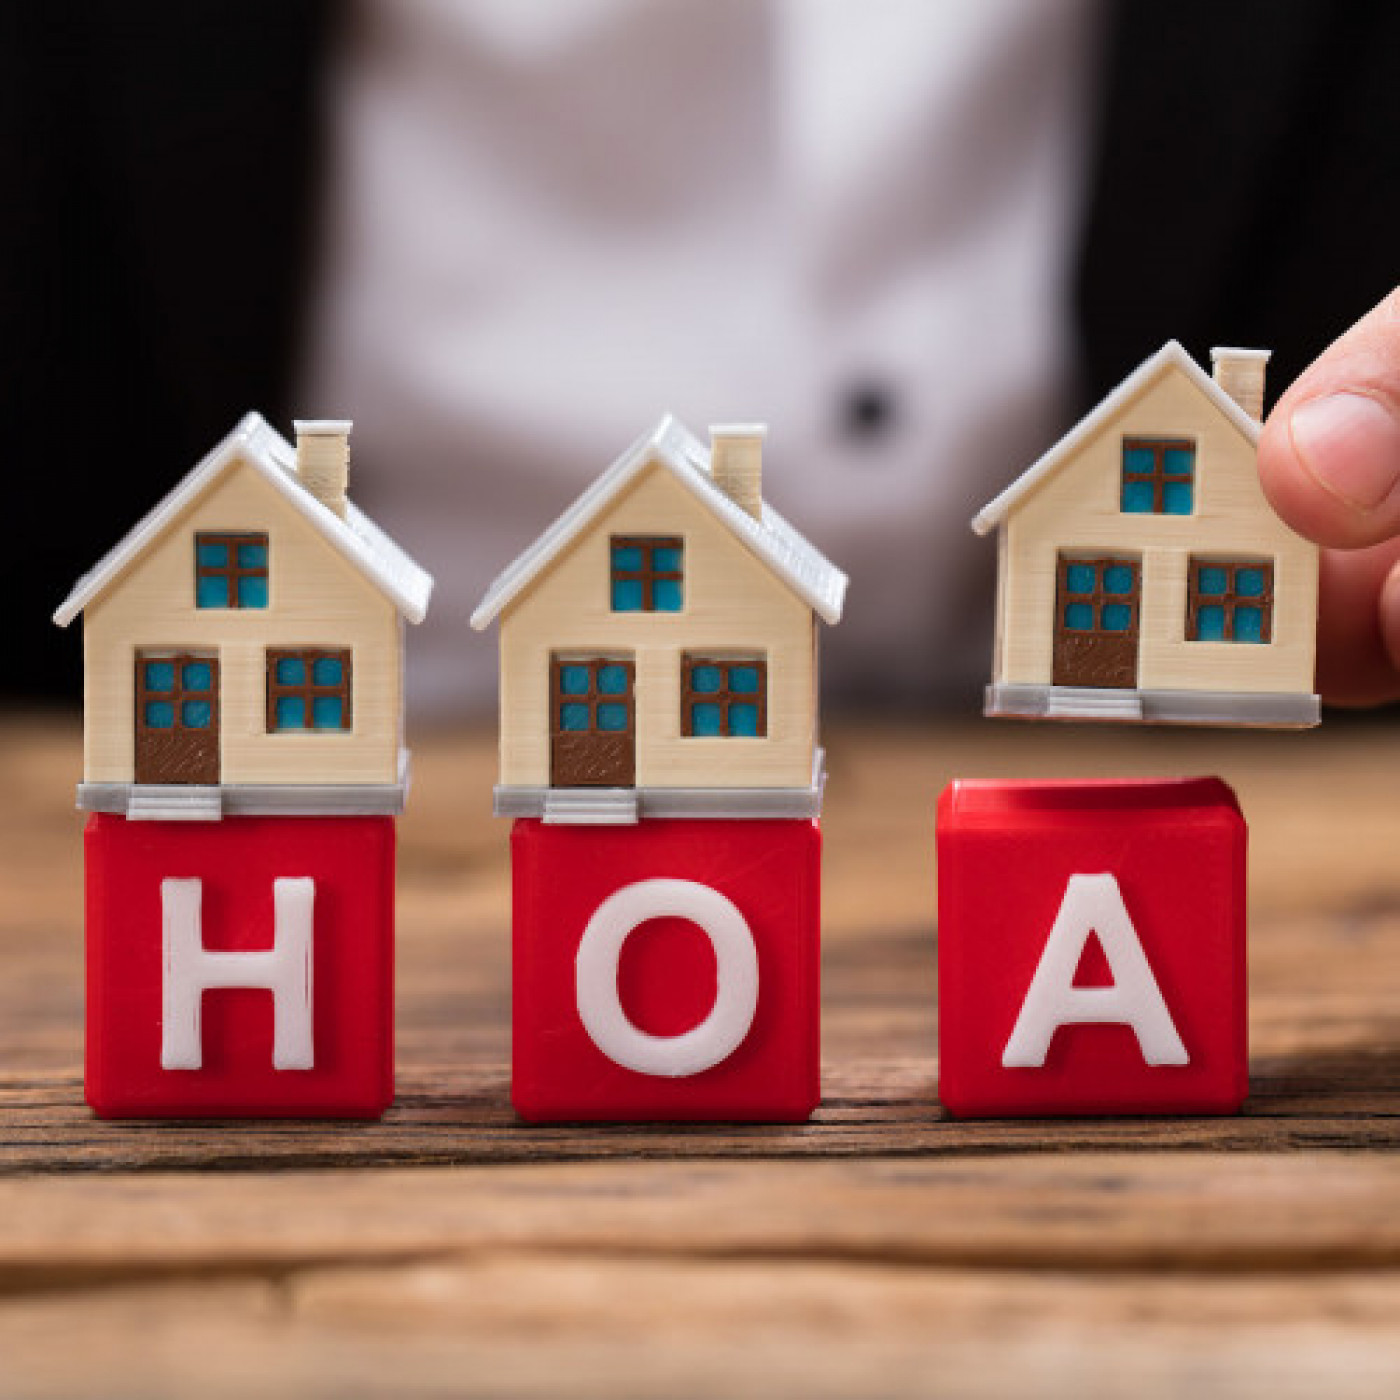 How to Deal With an HOA